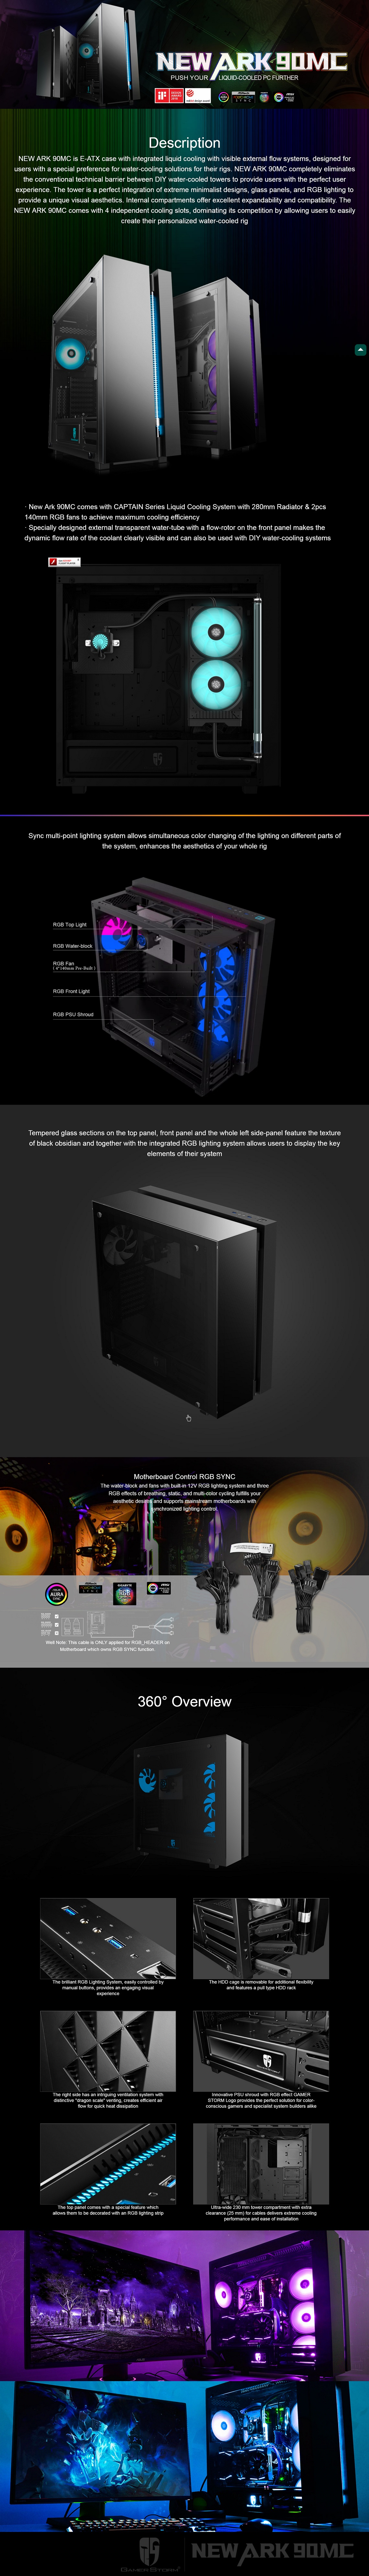 Deepcool Gamerstorm NEW ARK 90MC E-ATX Tower Case With Integrated Liquid Cooling